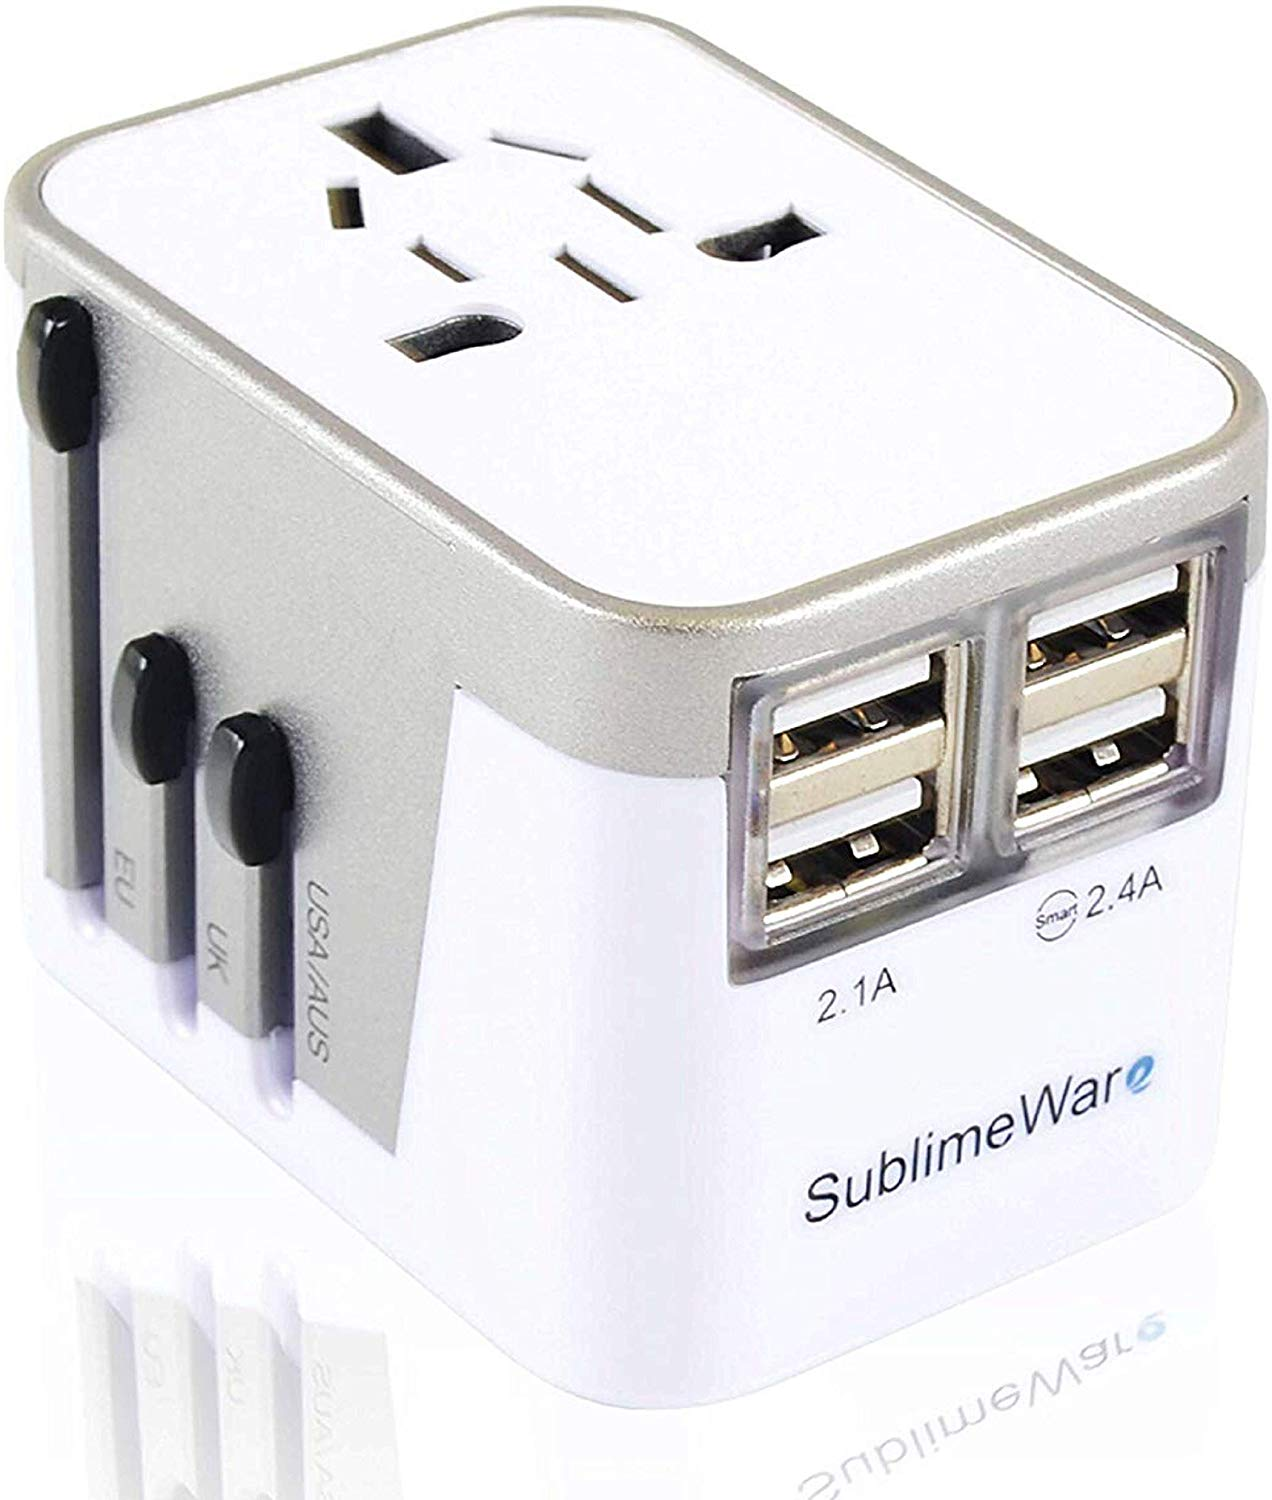 Power Plug Adapter by SublimeWare